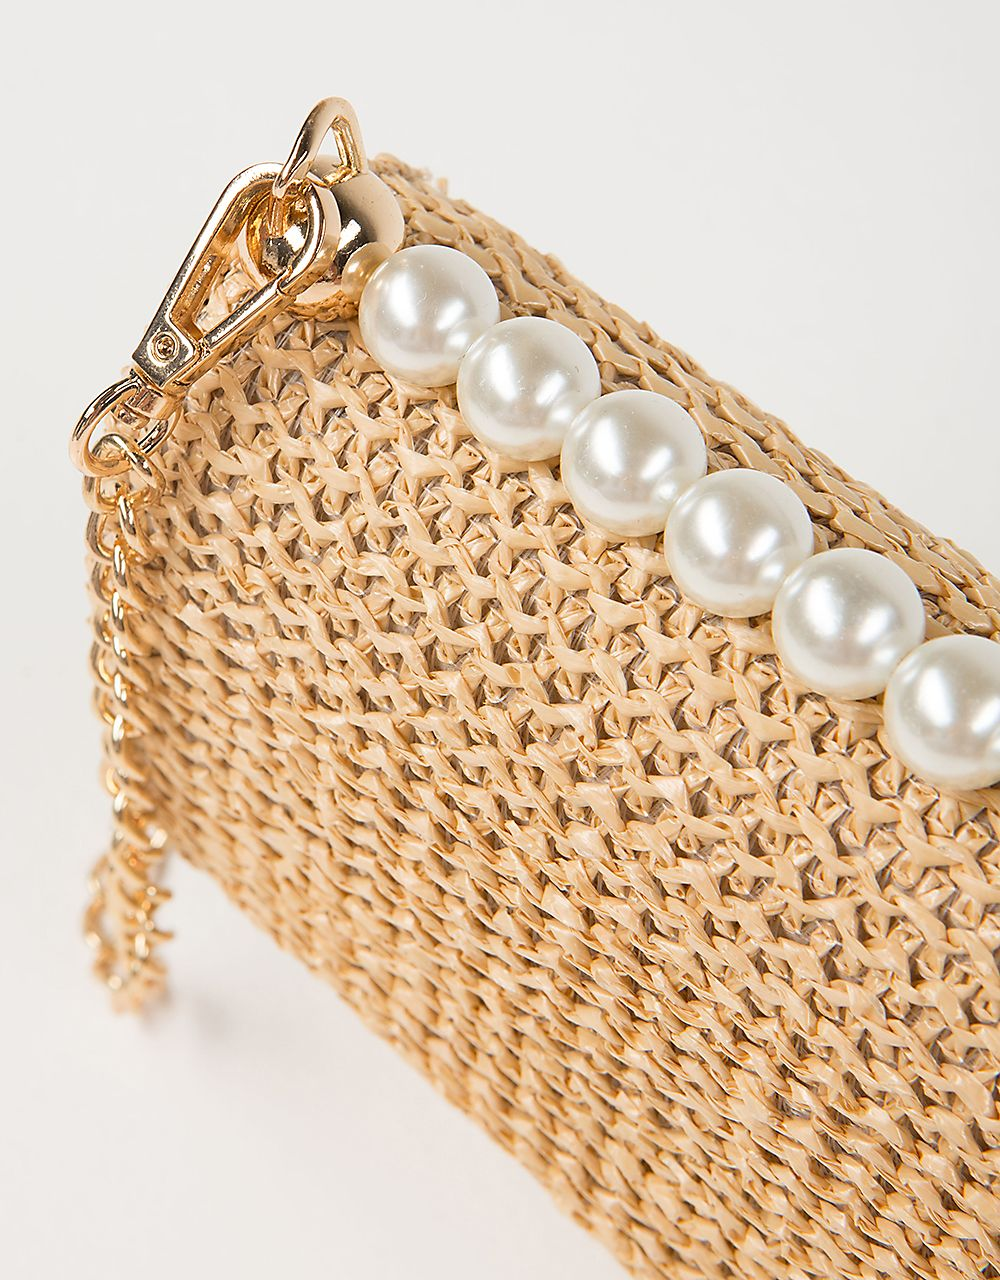 BAG WITH PEARLS